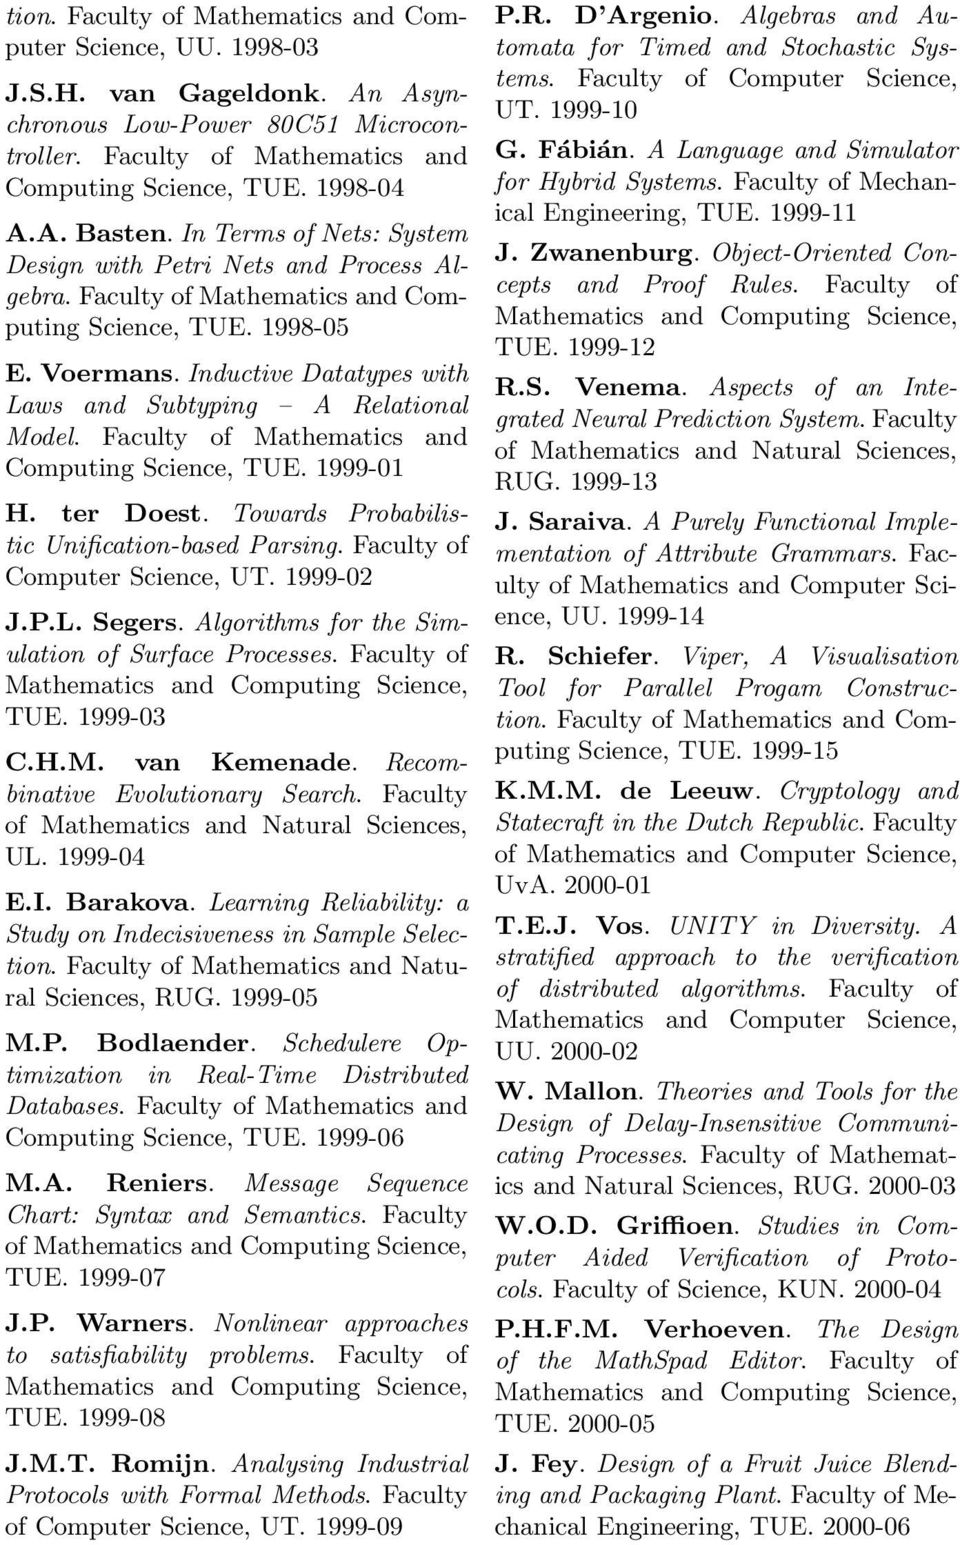 Faculty of Mathematics and Computing Science, TUE. 1999-01 H. ter Doest. Towards Probabilistic Unification-based Parsing. Facultyof Computer Science, UT. 1999-02 J.P.L. Segers.